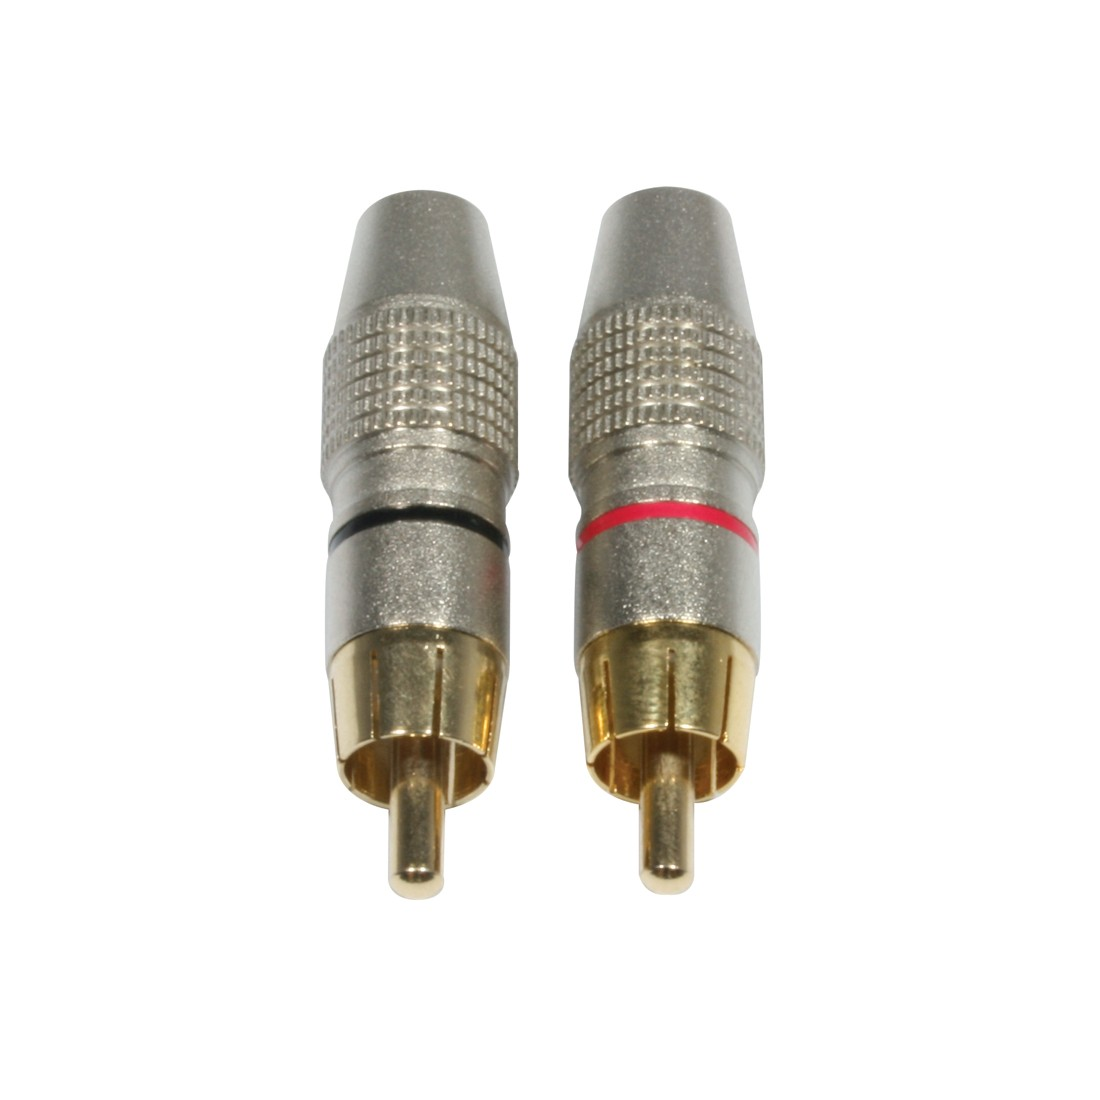 Rca Cable Locator : Ac c rmg set rca cinch plug male gold cable connectors